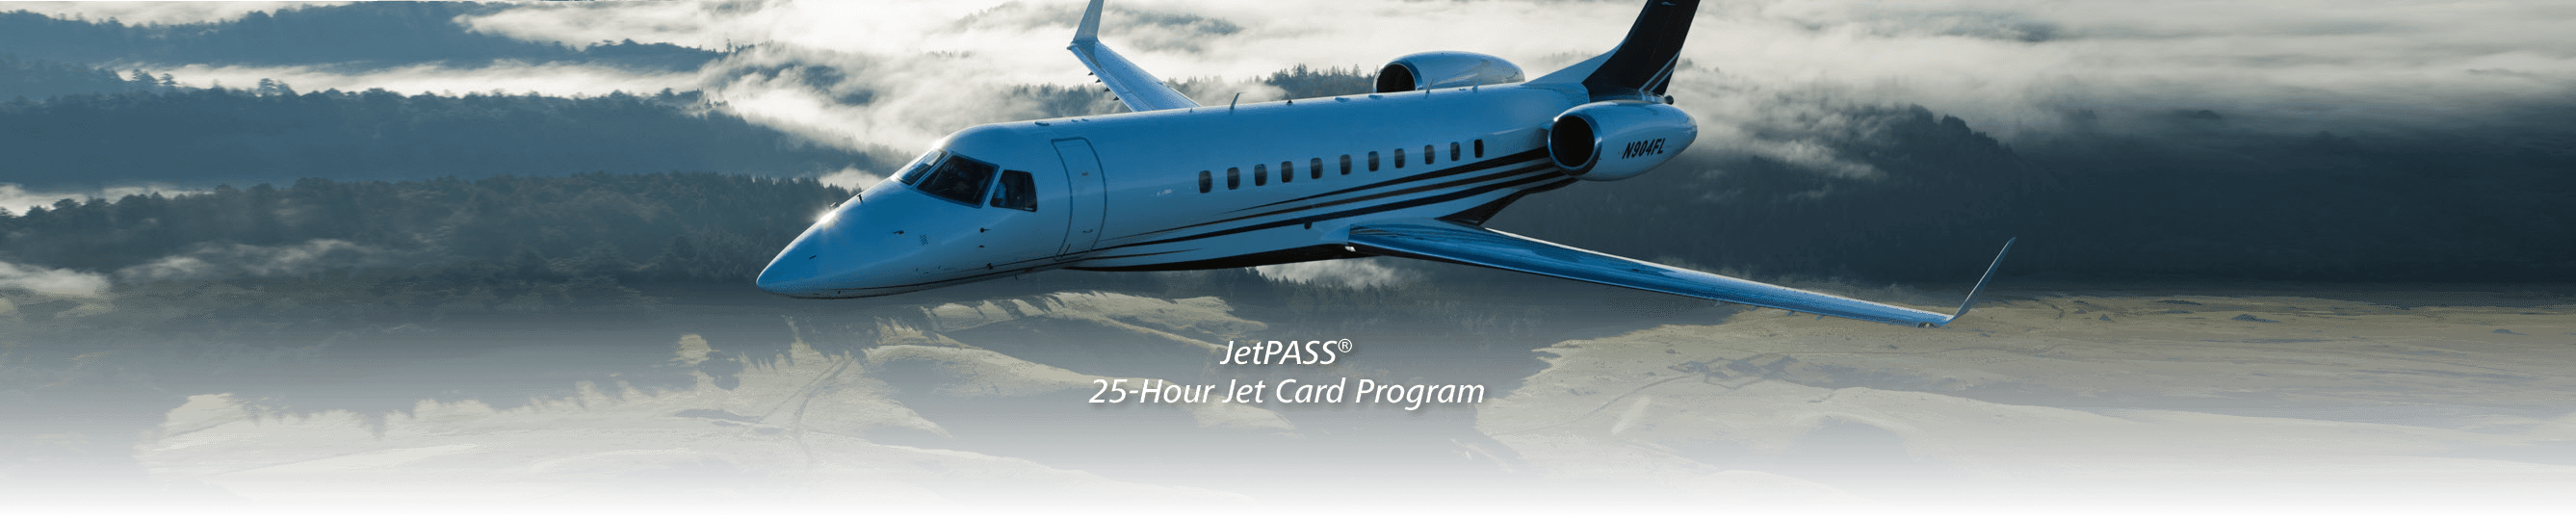 Flight Options JetPASS® 25-Hour Card Program